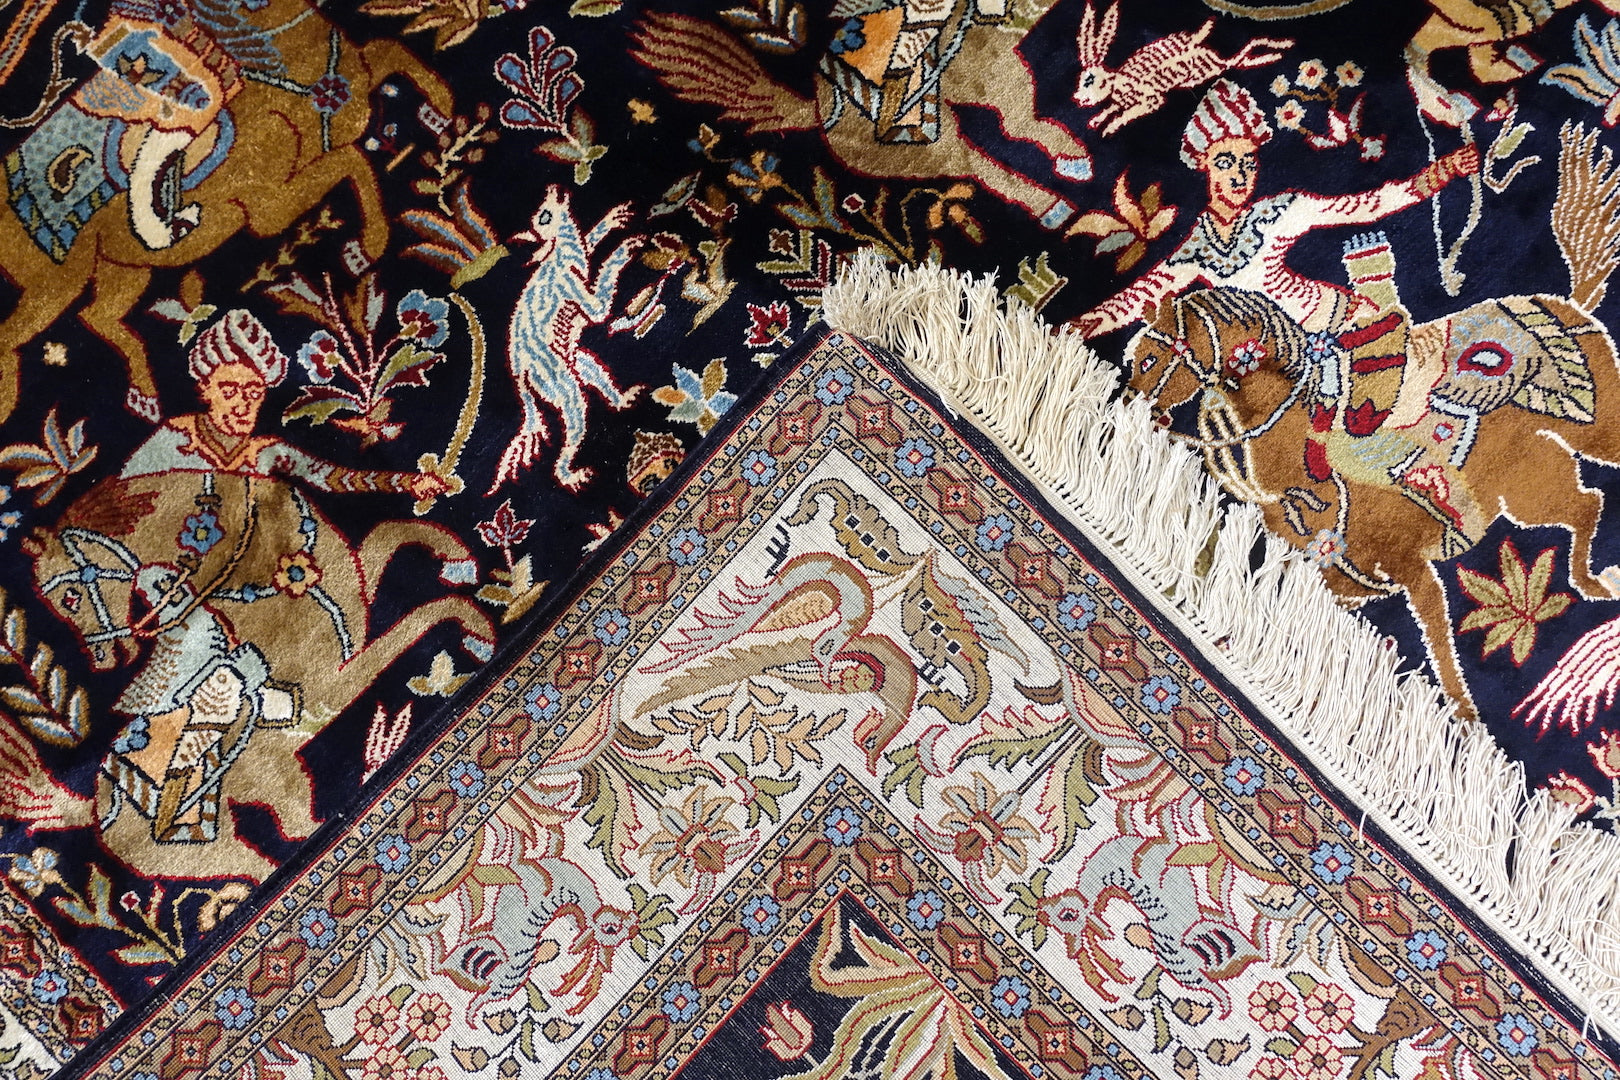 A 6 feet by 4 feet silk on silk rug from kashmir. The colours used in the rug are navy blue,beige,white,red,orange and yellow.